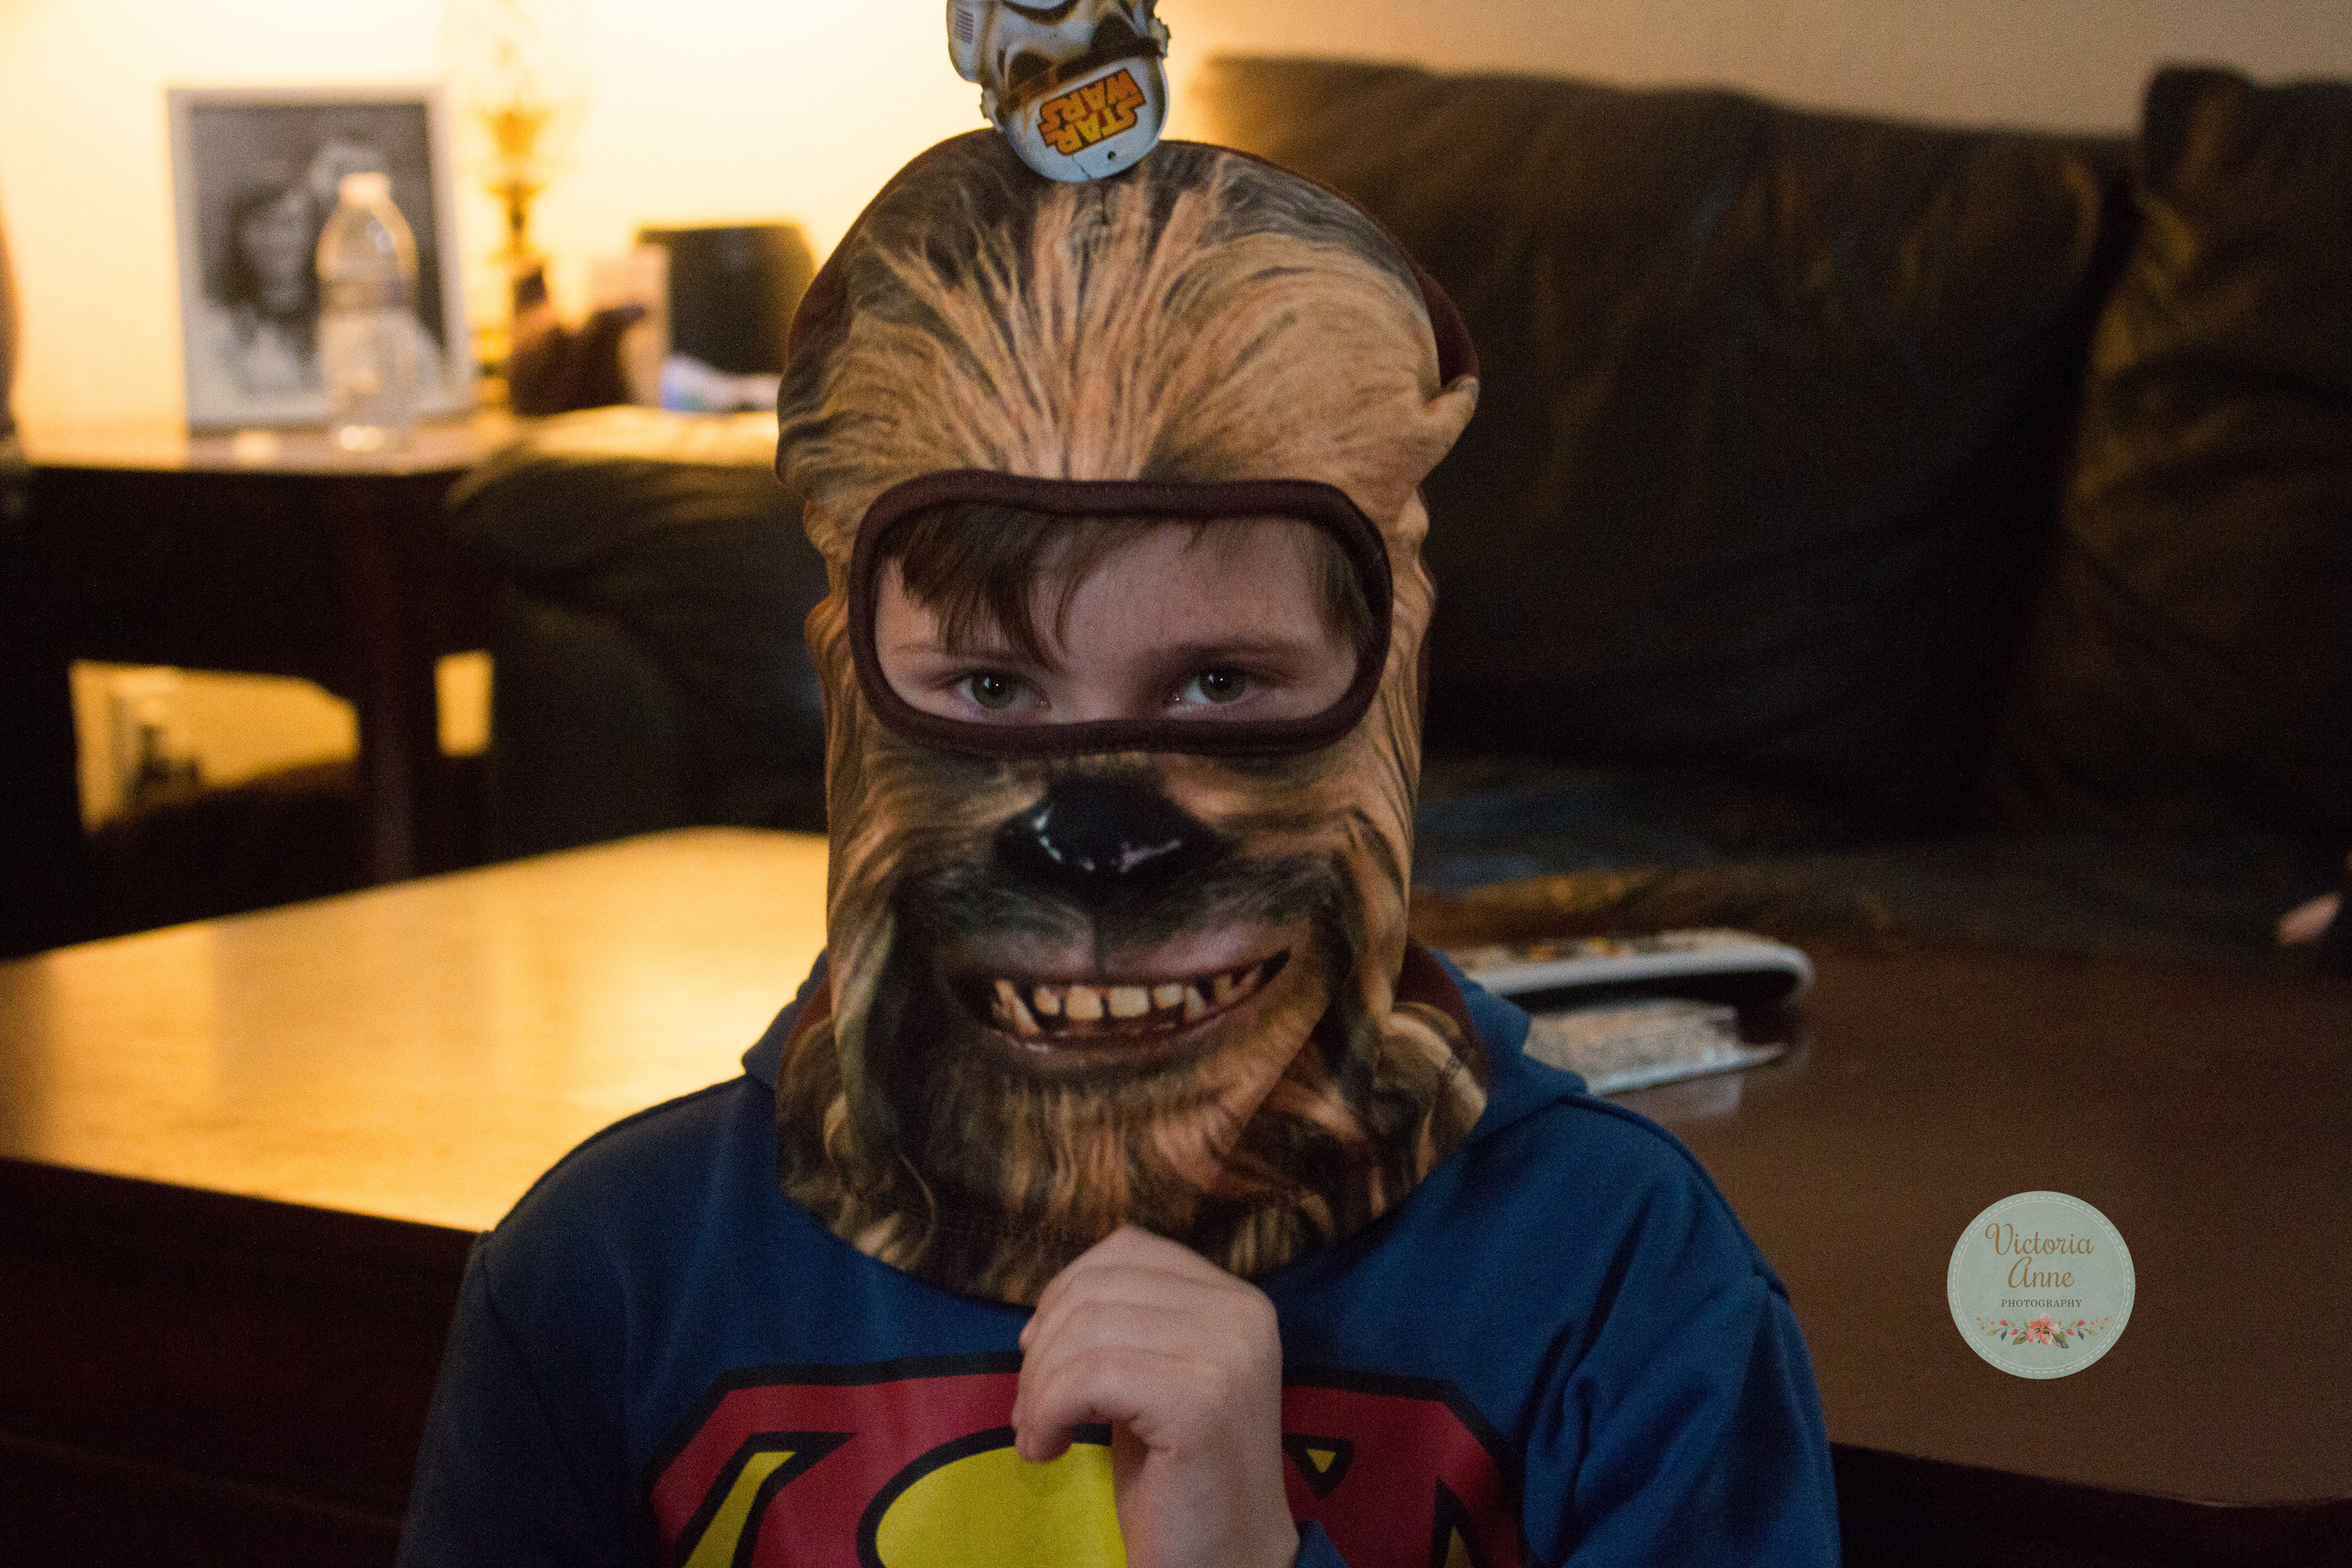 My mother in law got these awesome ski masks for the boys, one is Chewy and one is Darth.